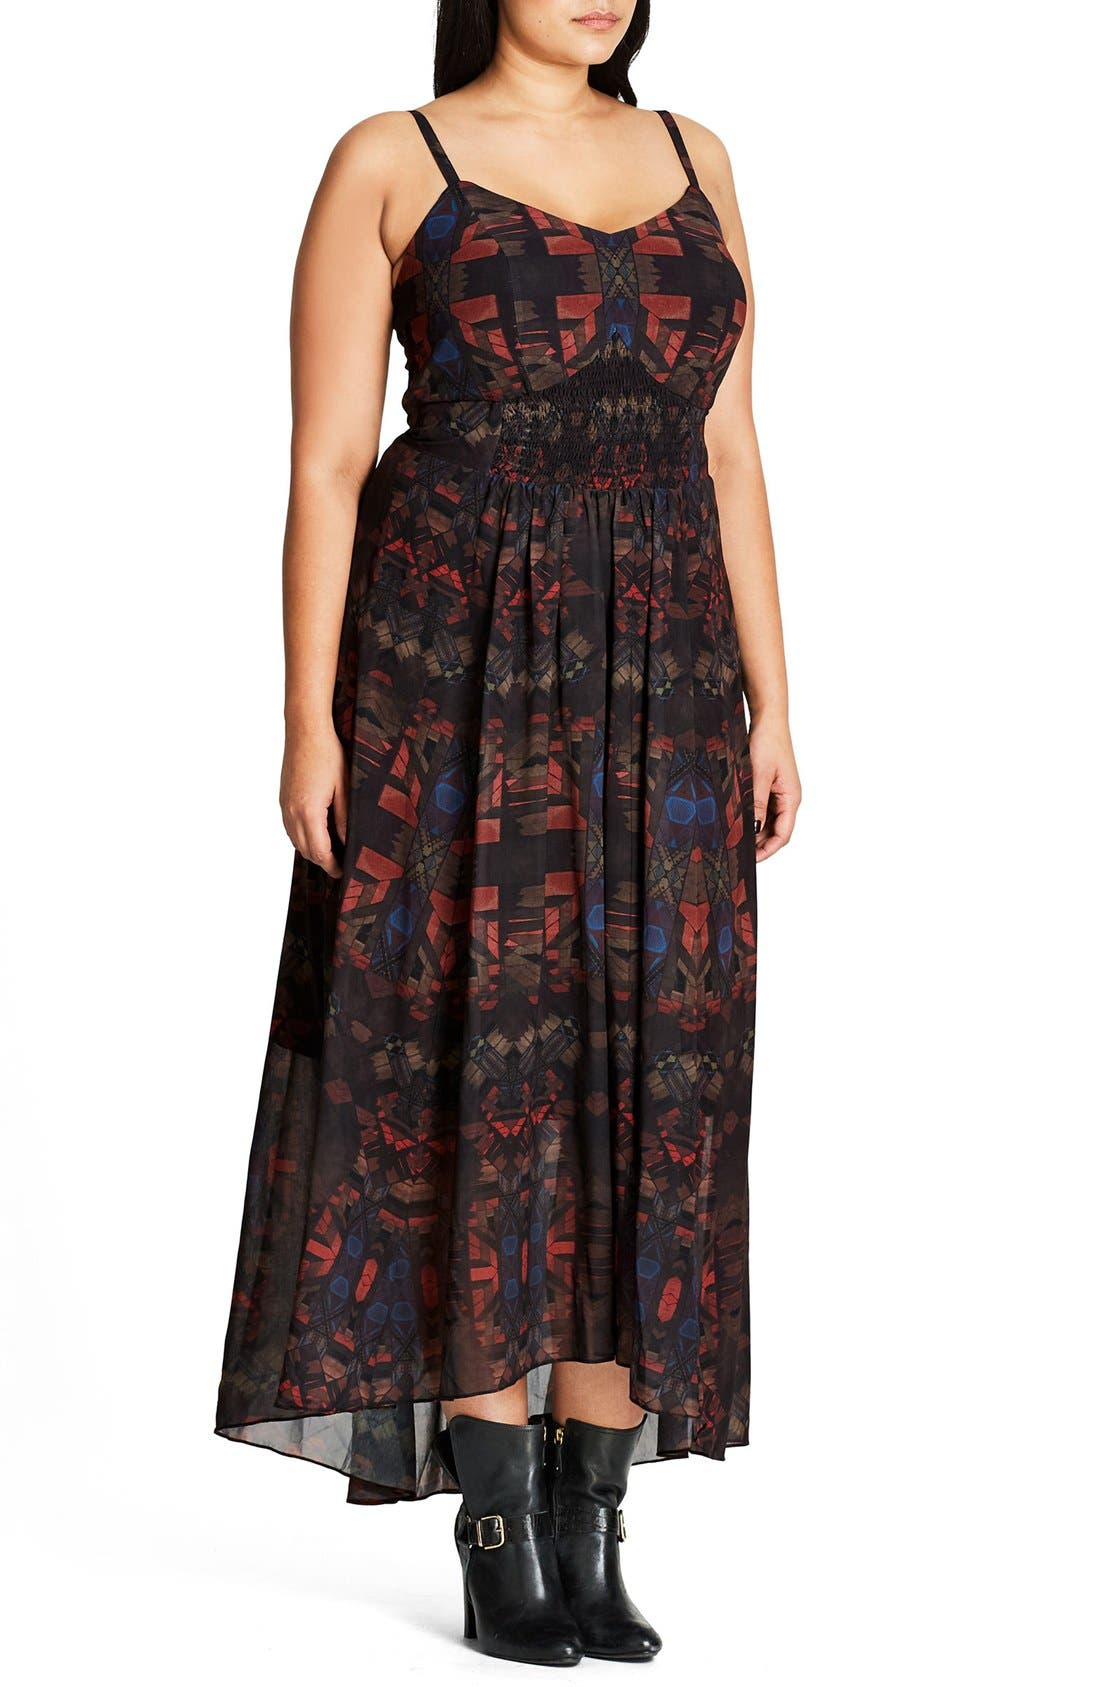 Alternate Image 1 Selected - City Chic Aztec Warrior Smocked Waist Maxi Dress (Plus Size)